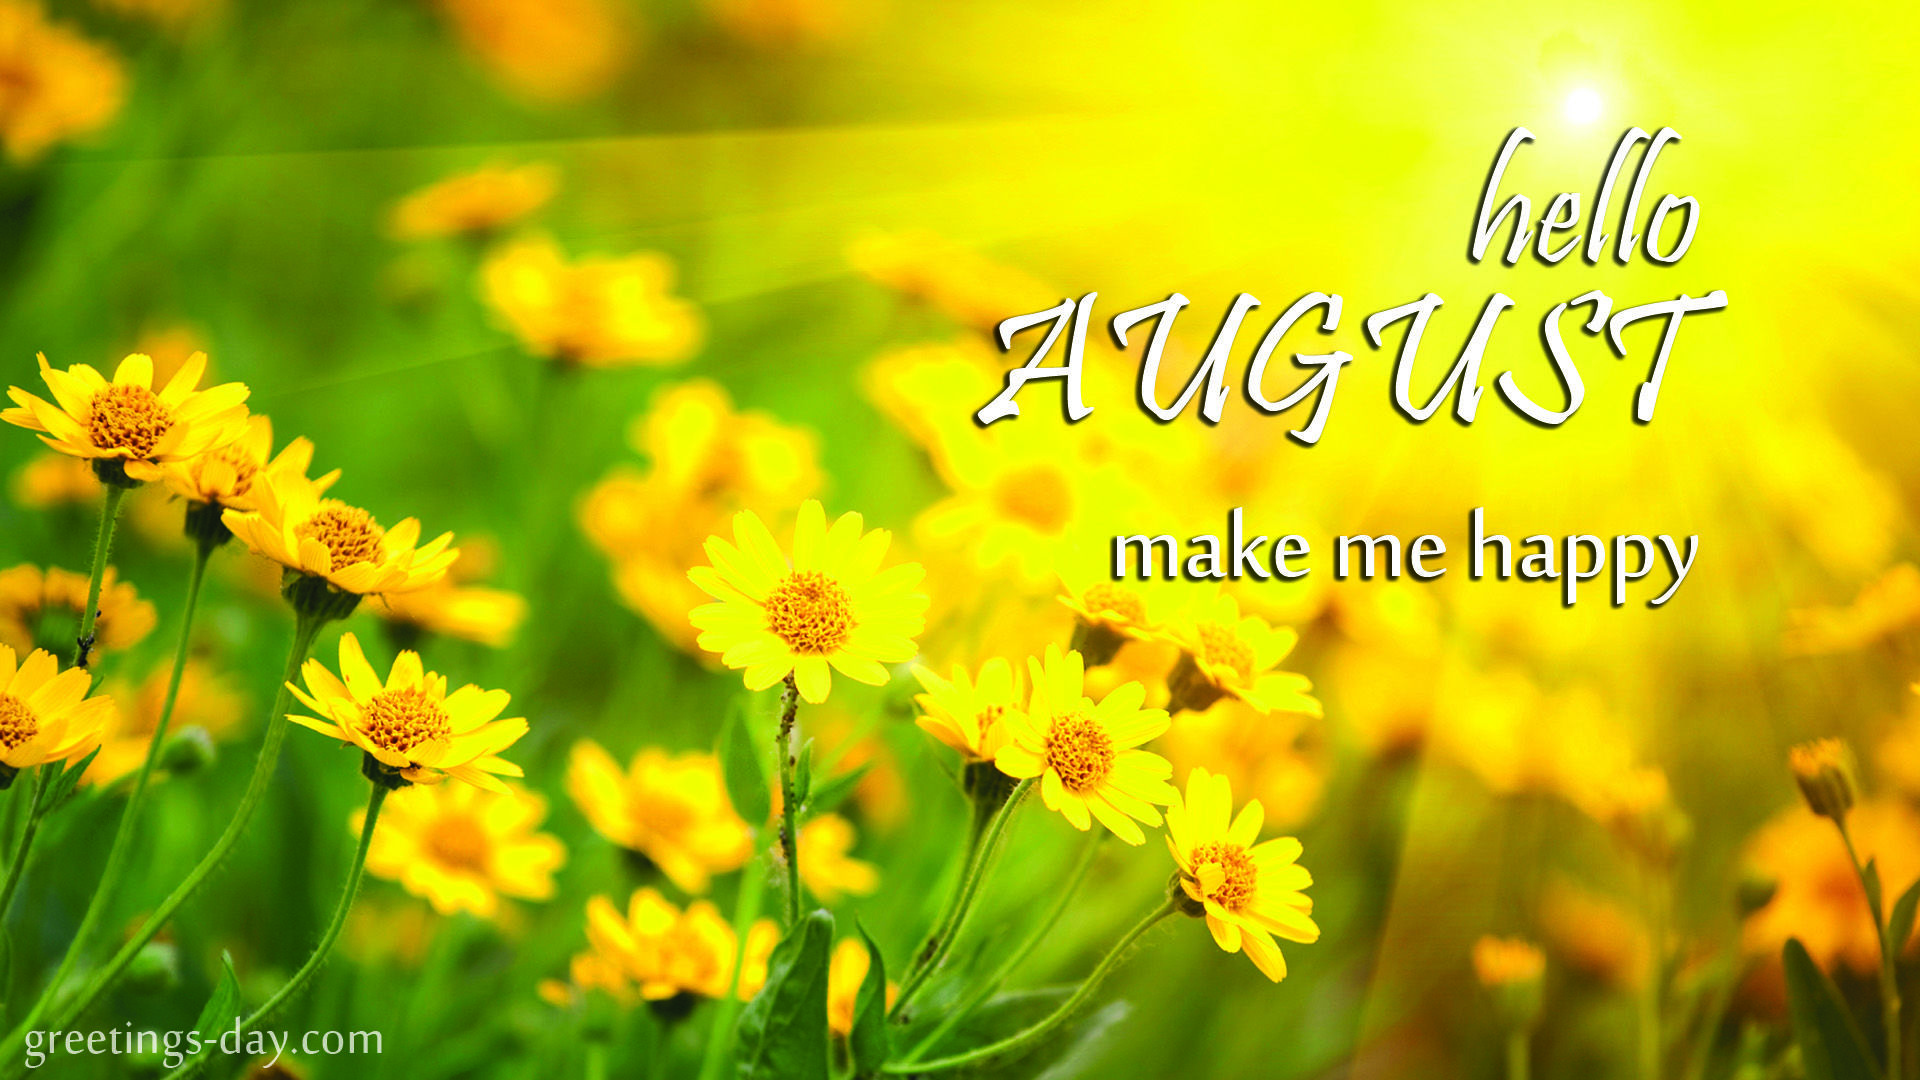 Hello wednesday pictures photos and images for facebook tumblr - Hello August Make Me Happy